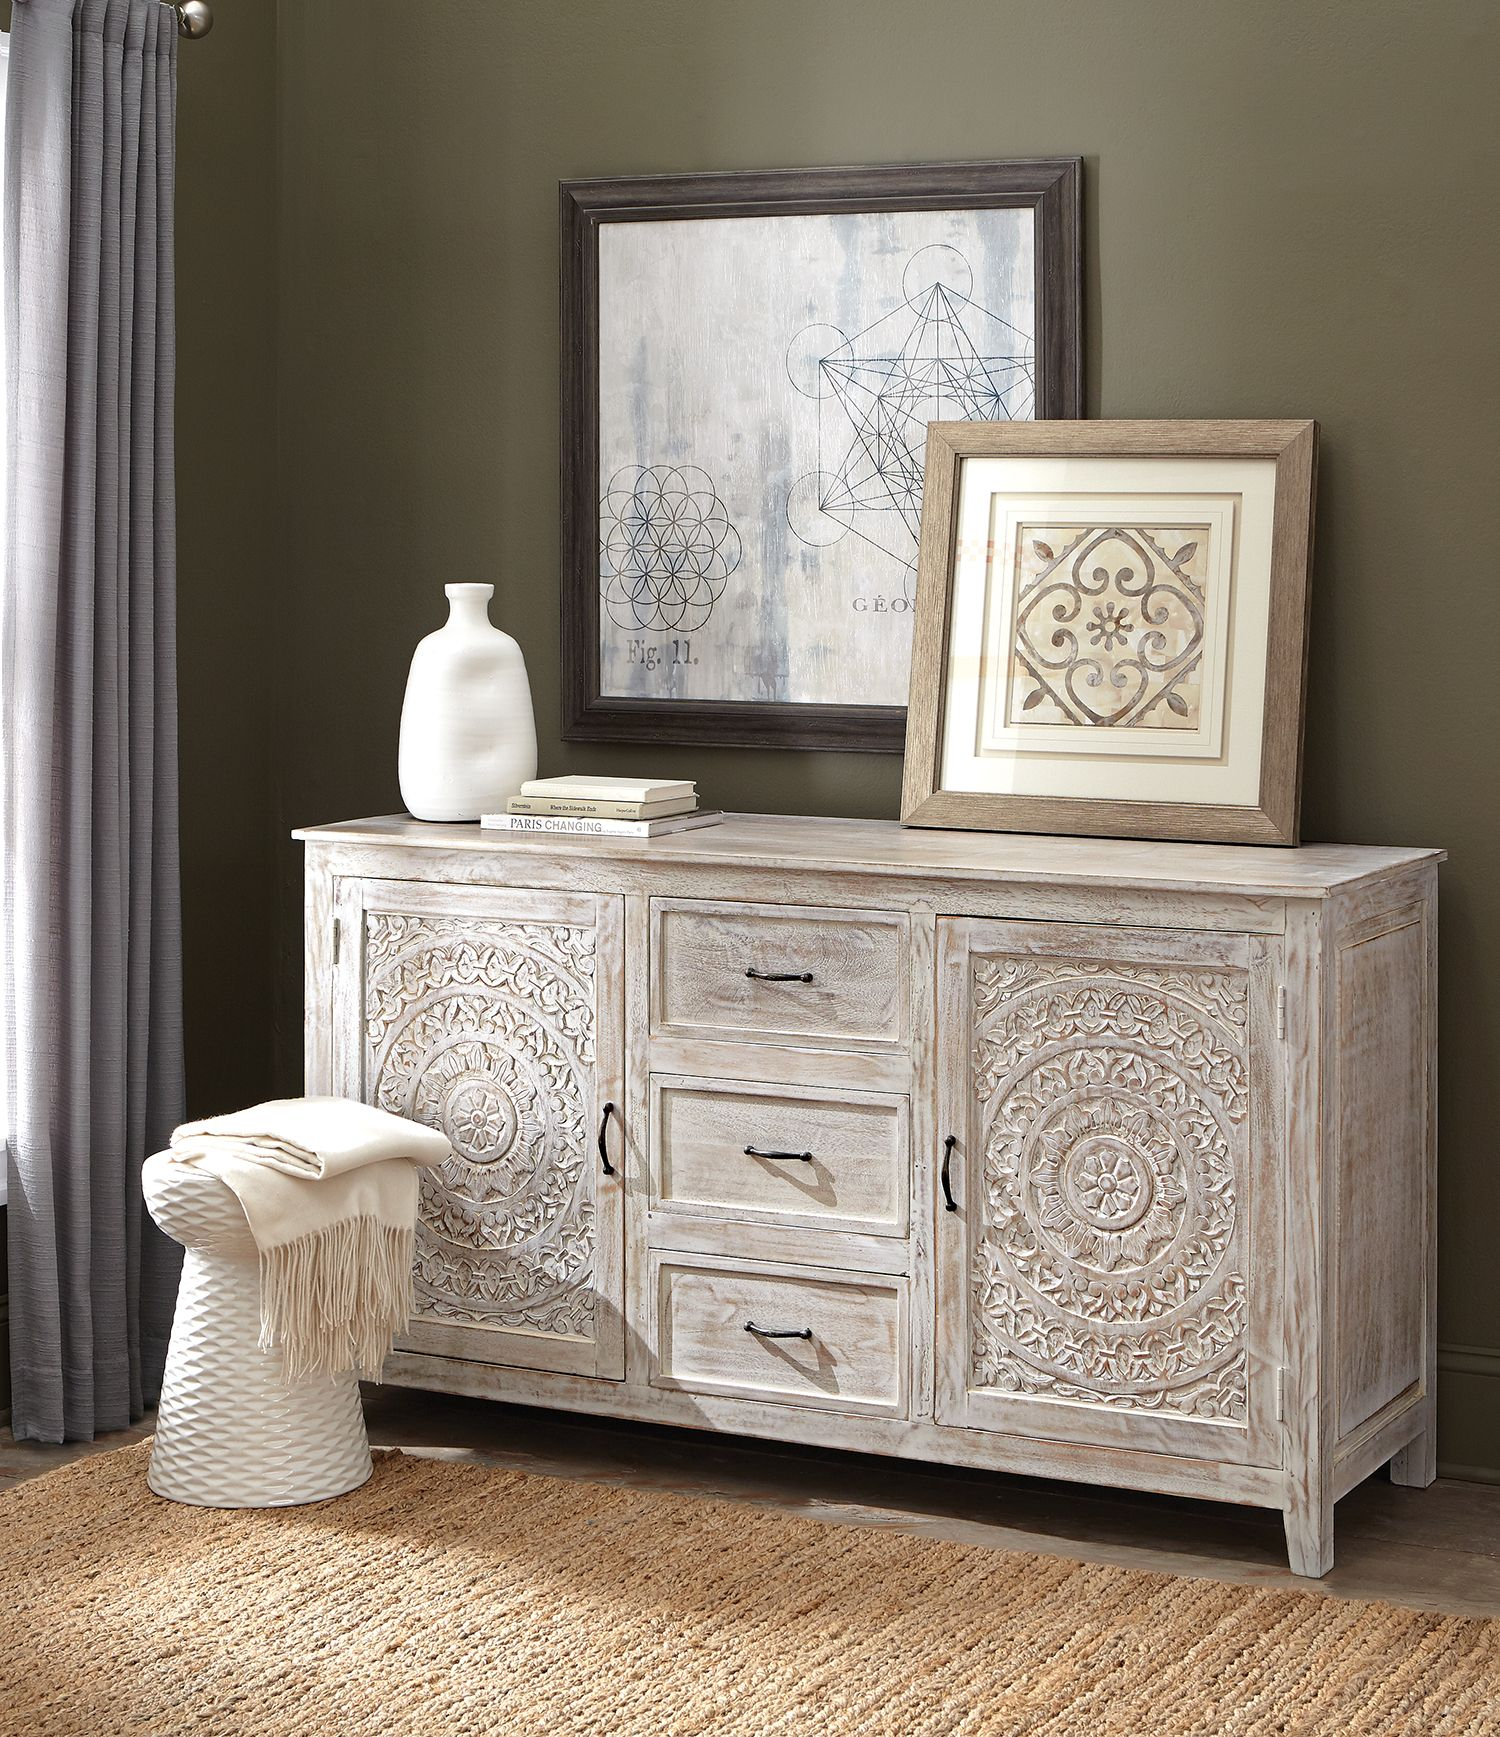 Marvelous Lots Of Storage And Style. Loving Our Chennai Dresser For The Bedroom. A  Detailed